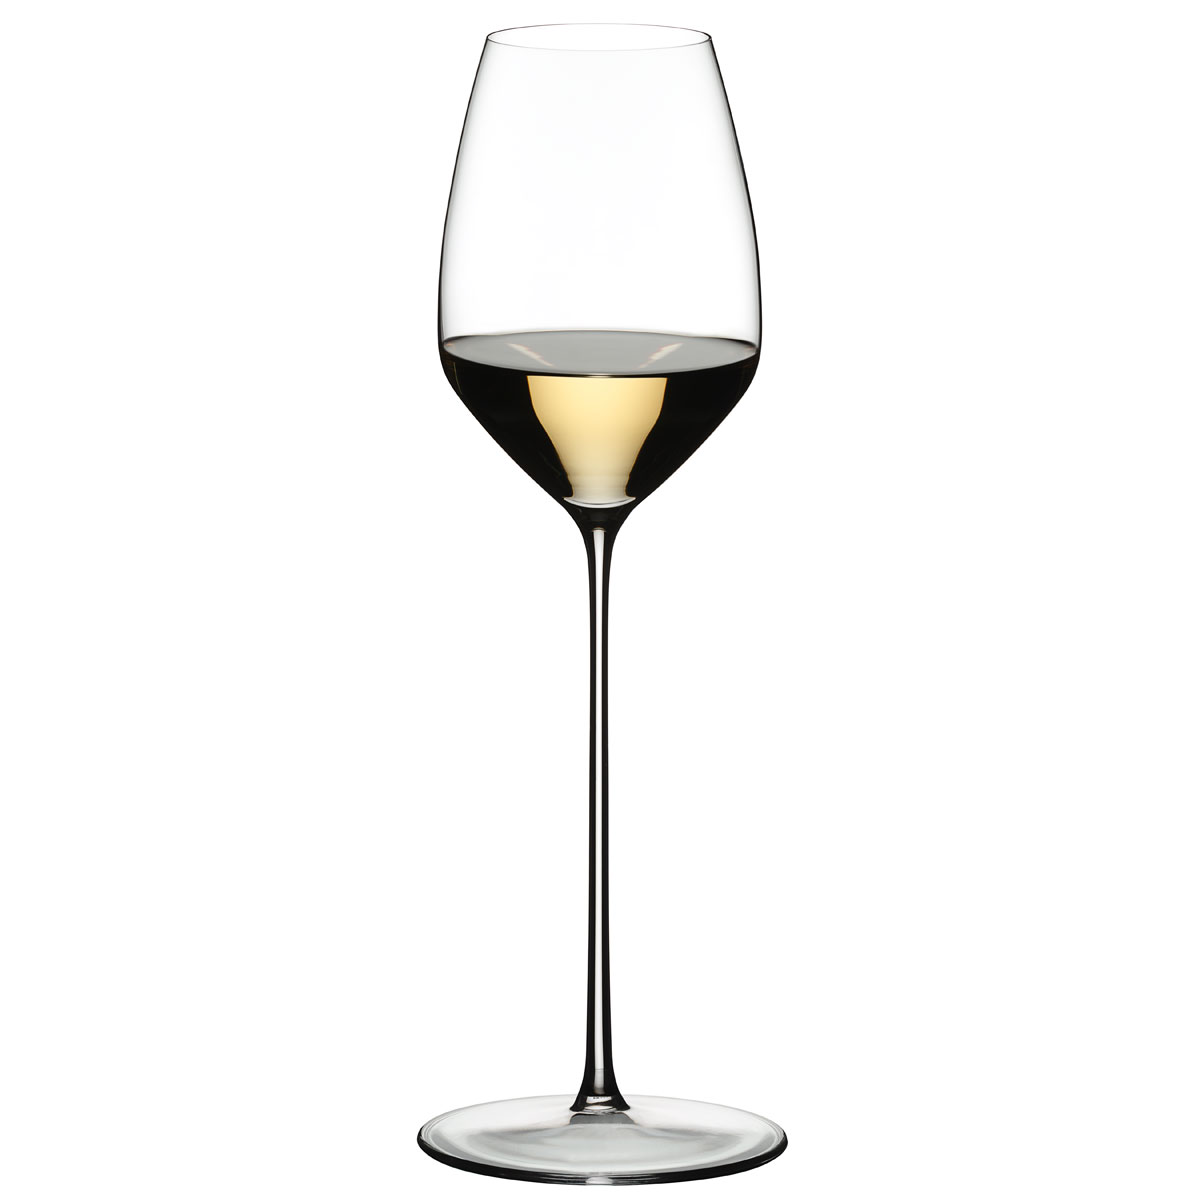 Riedel Max Riesling Wine Glass, Single